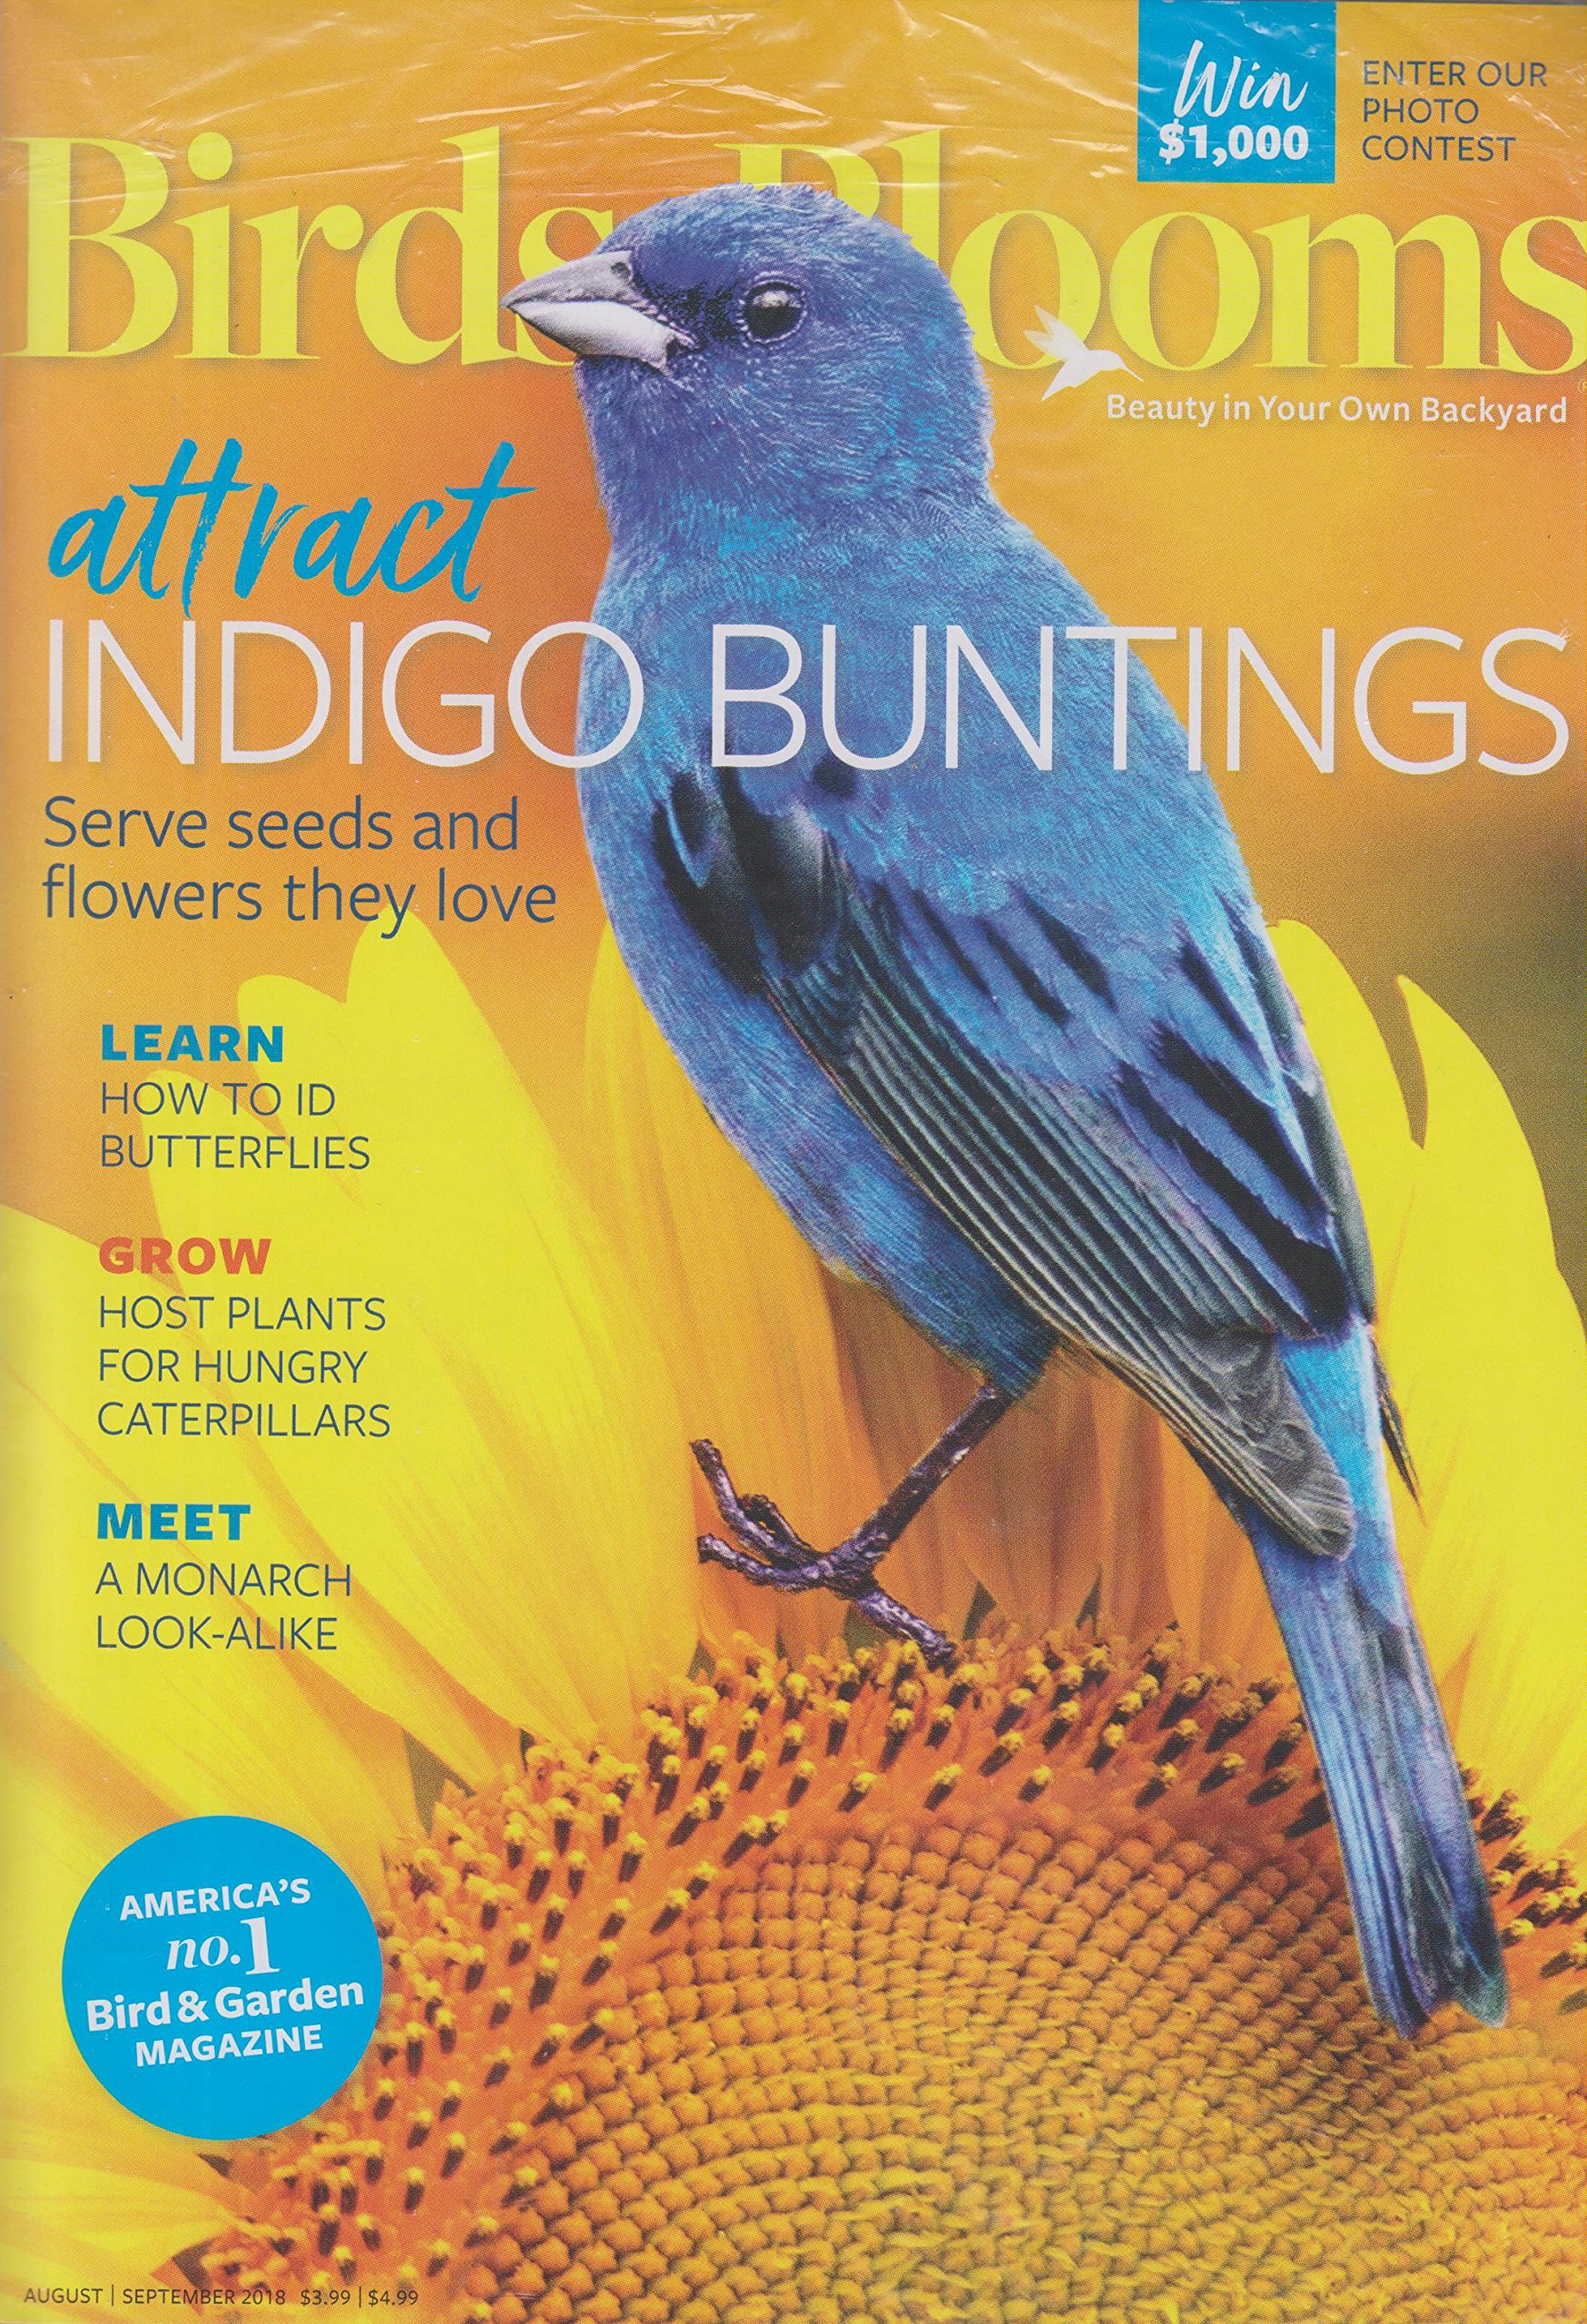 How To Attract Indigo Buntings To Your Backyard - House of ...